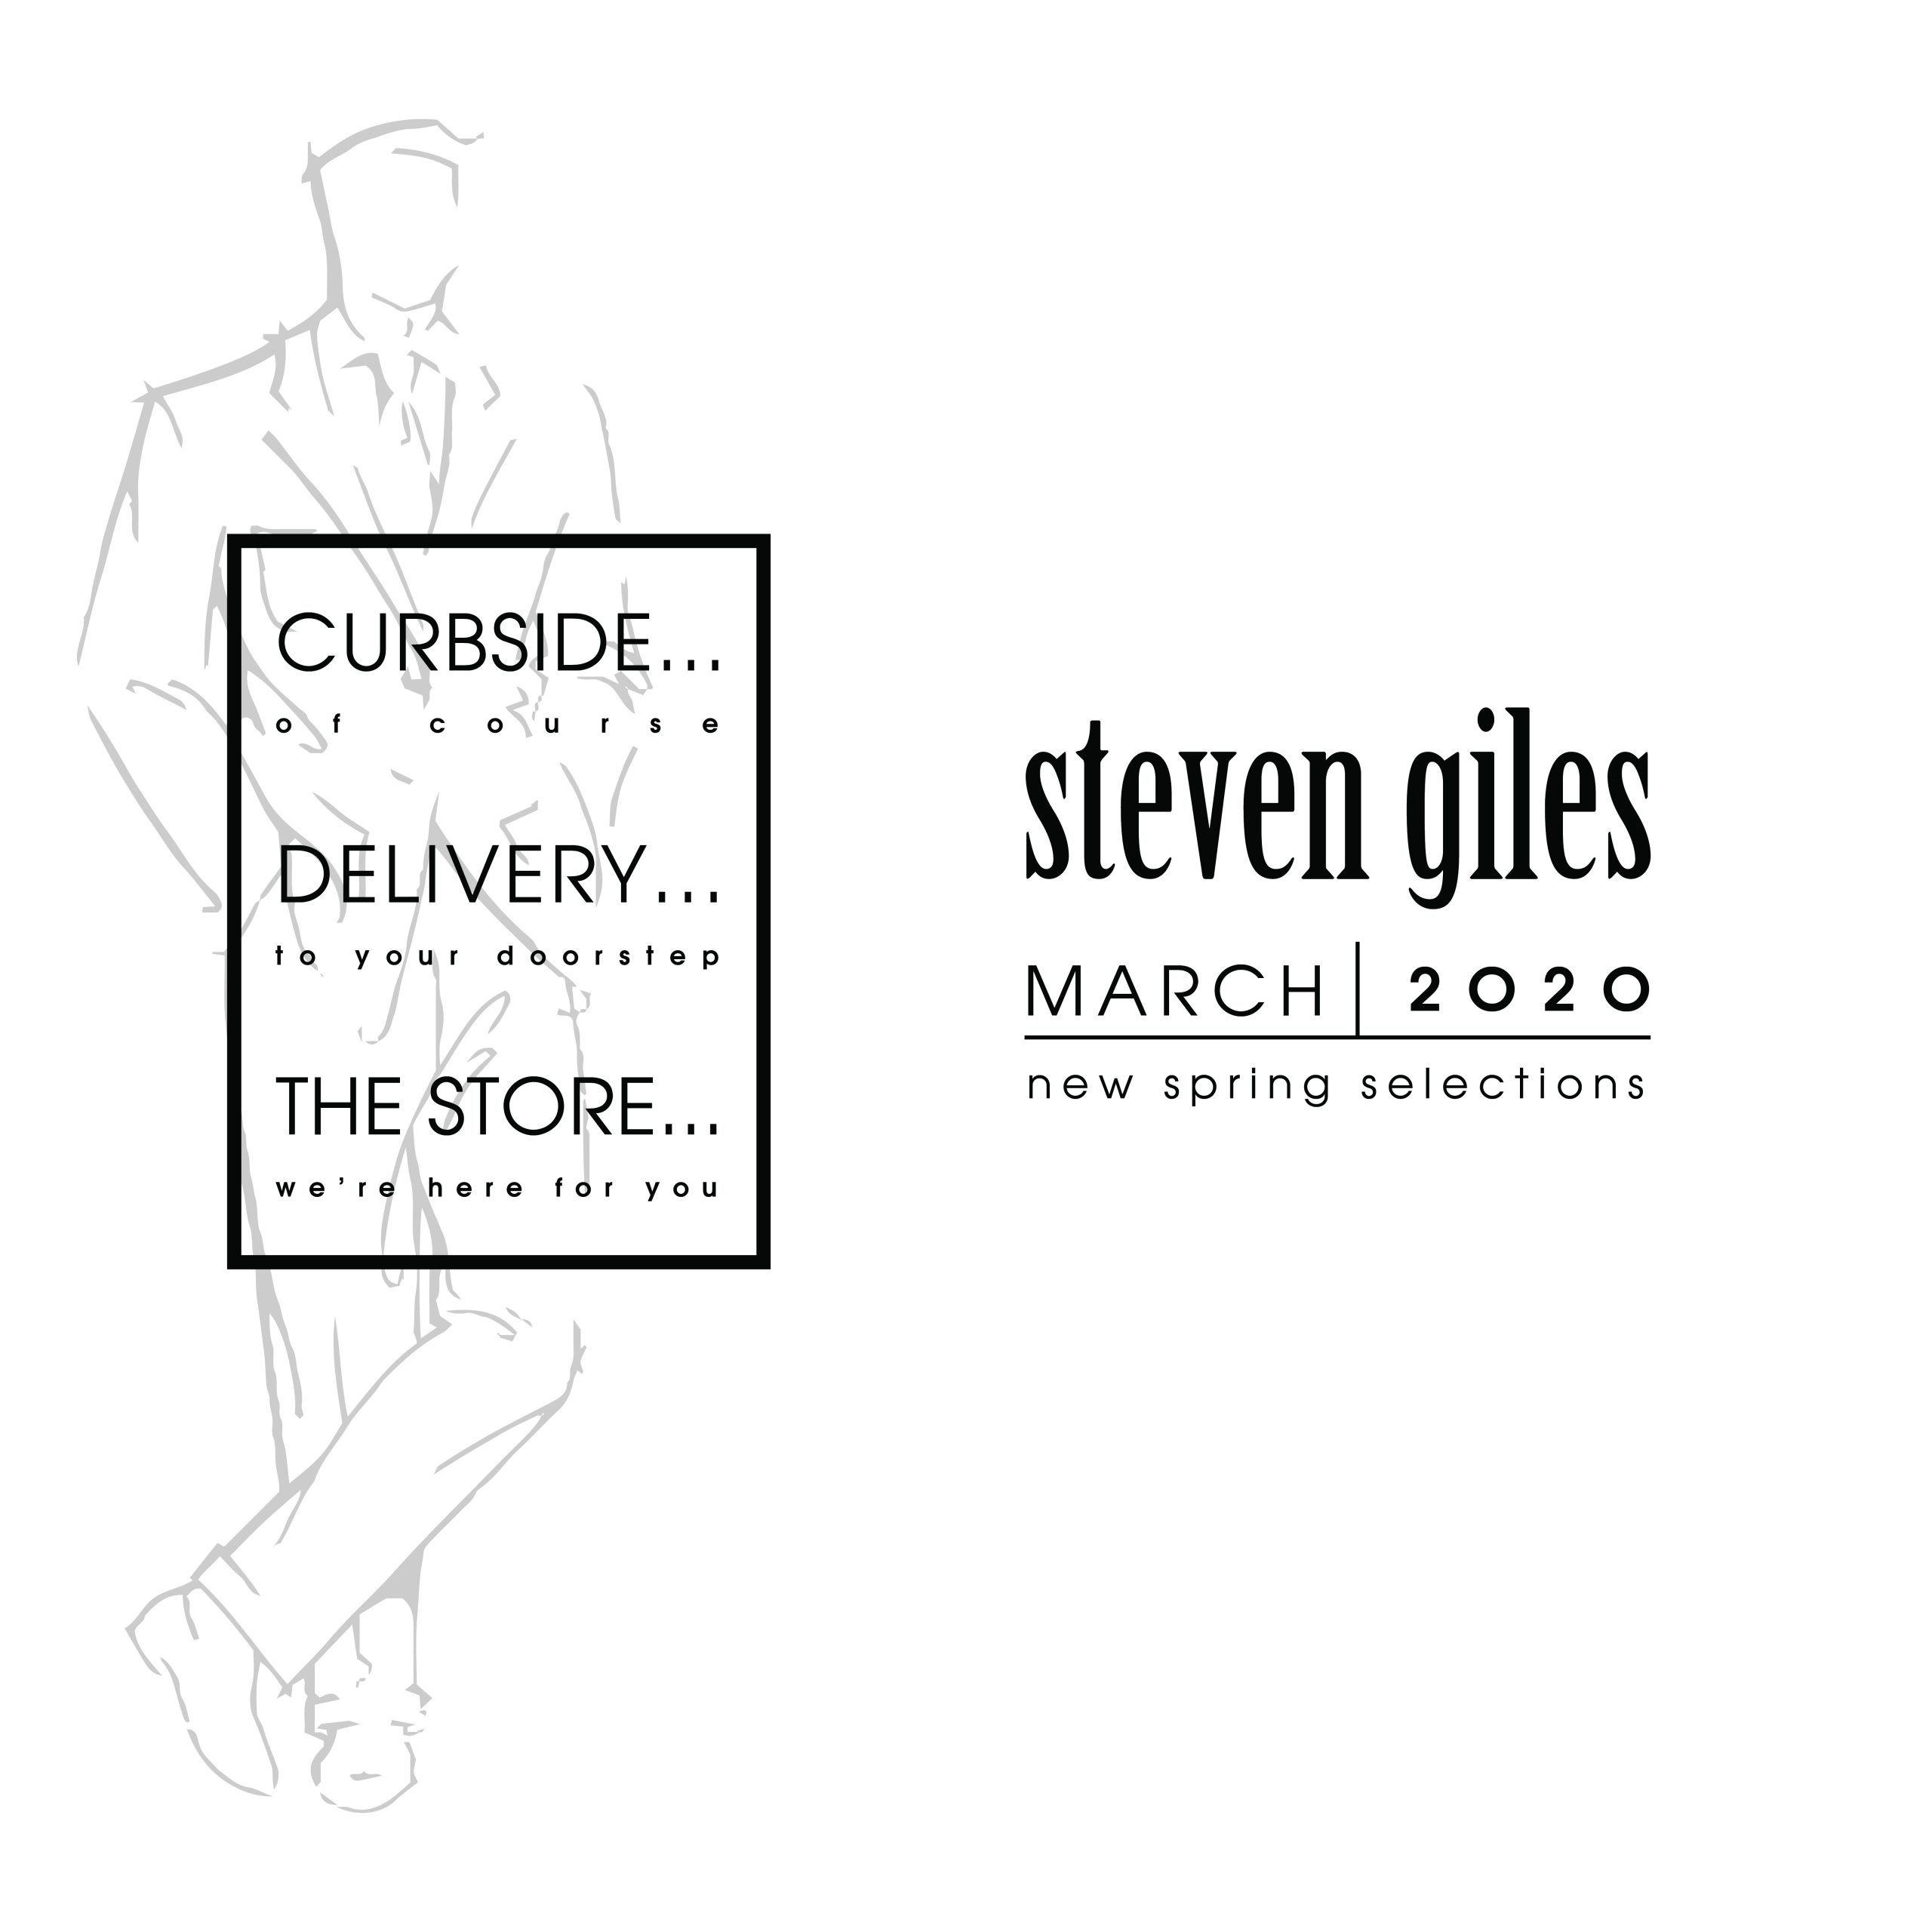 Curbside, Delivery & The Store